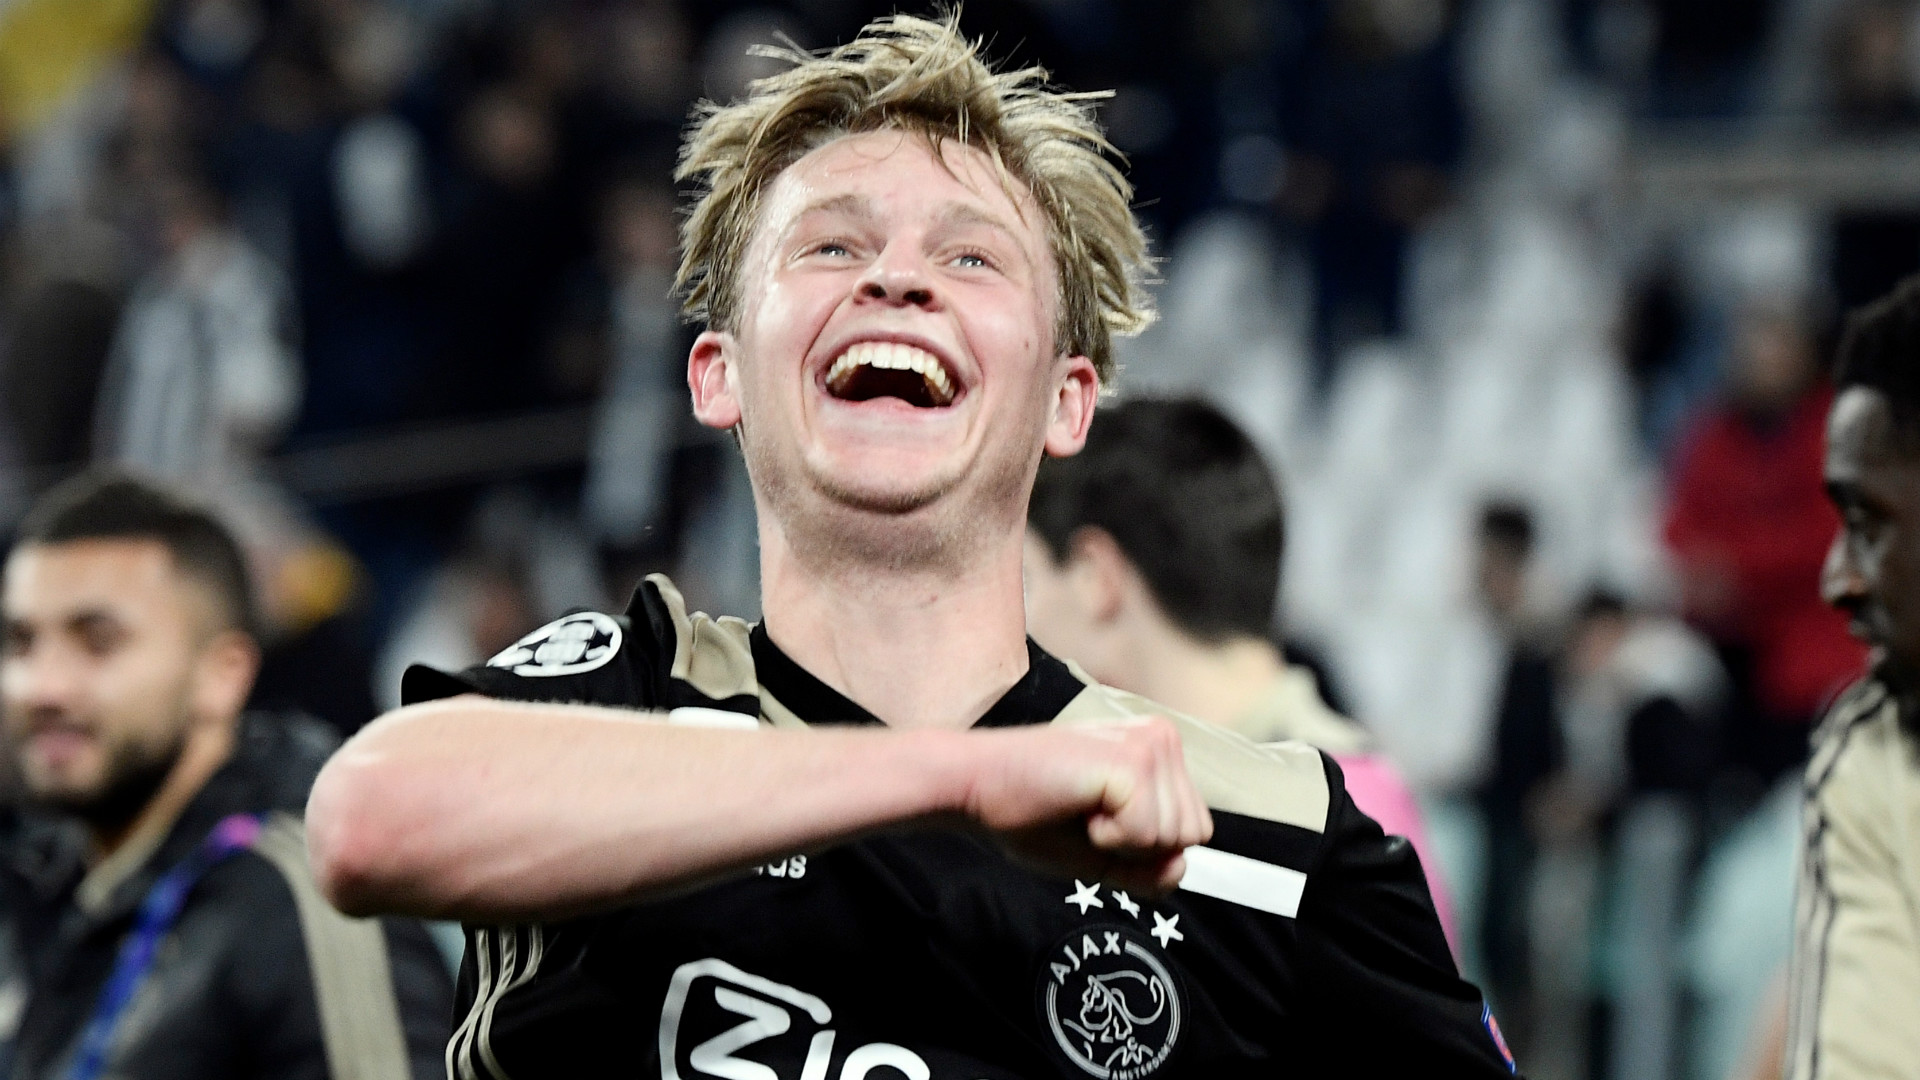 De Jong: I don't expect to be a starter at Barcelona